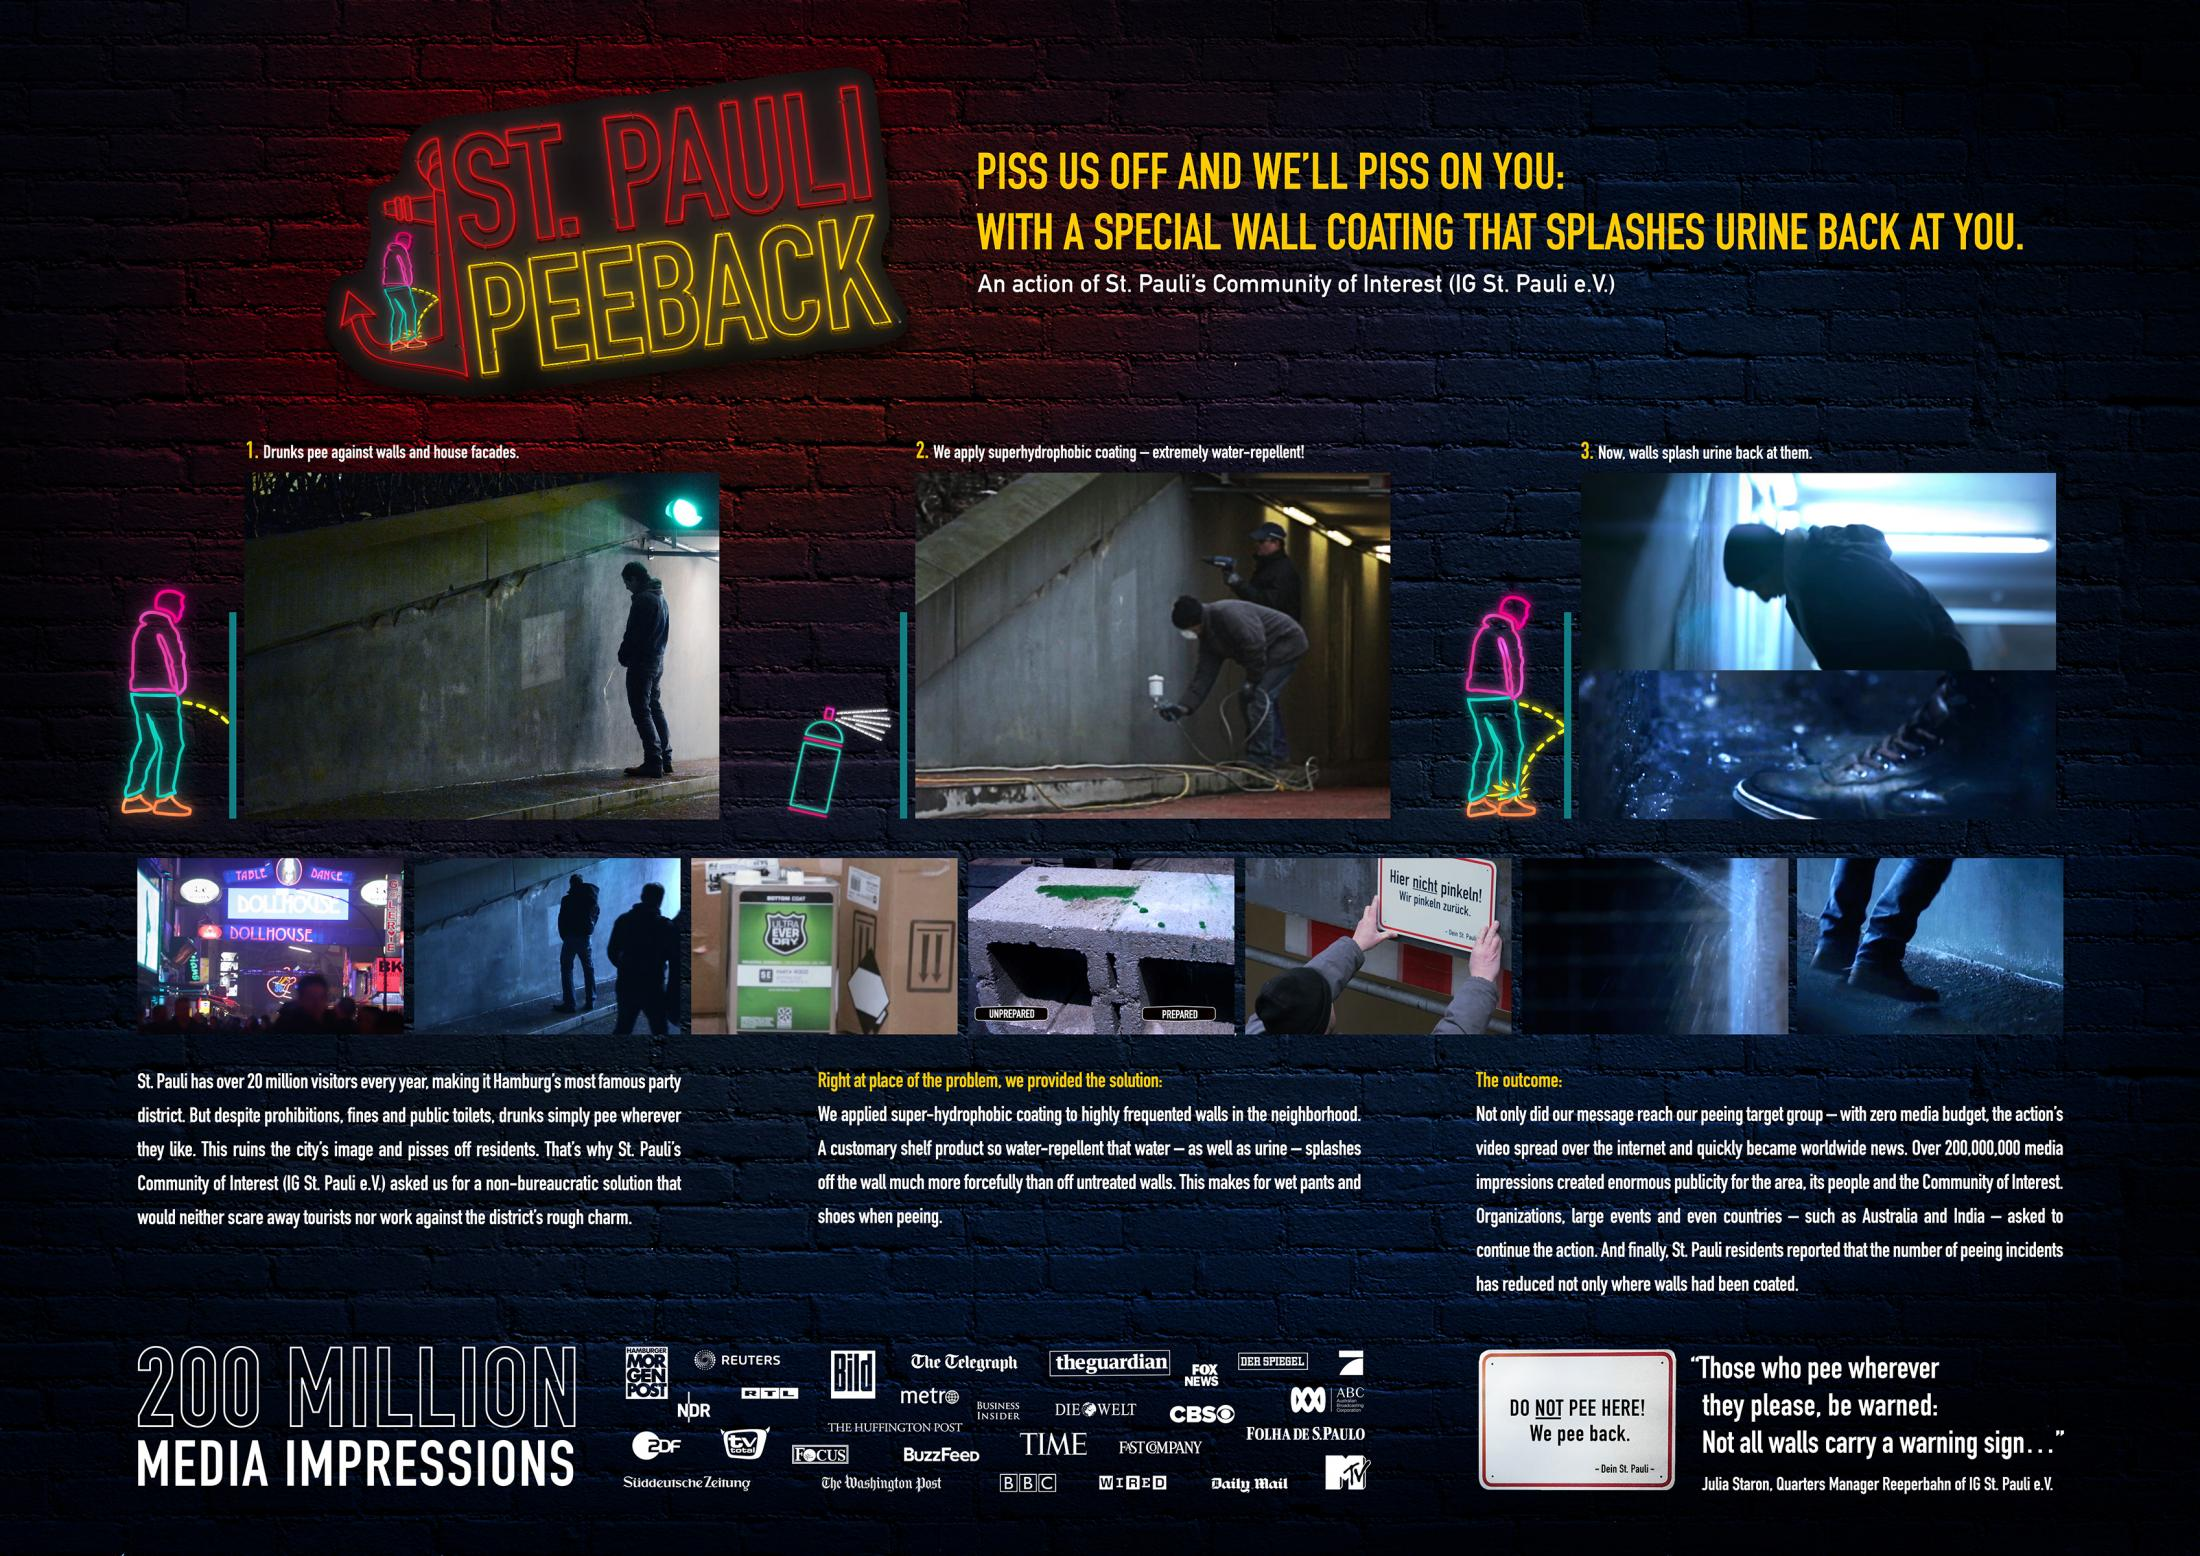 Thumbnail for St. Pauli Peeback